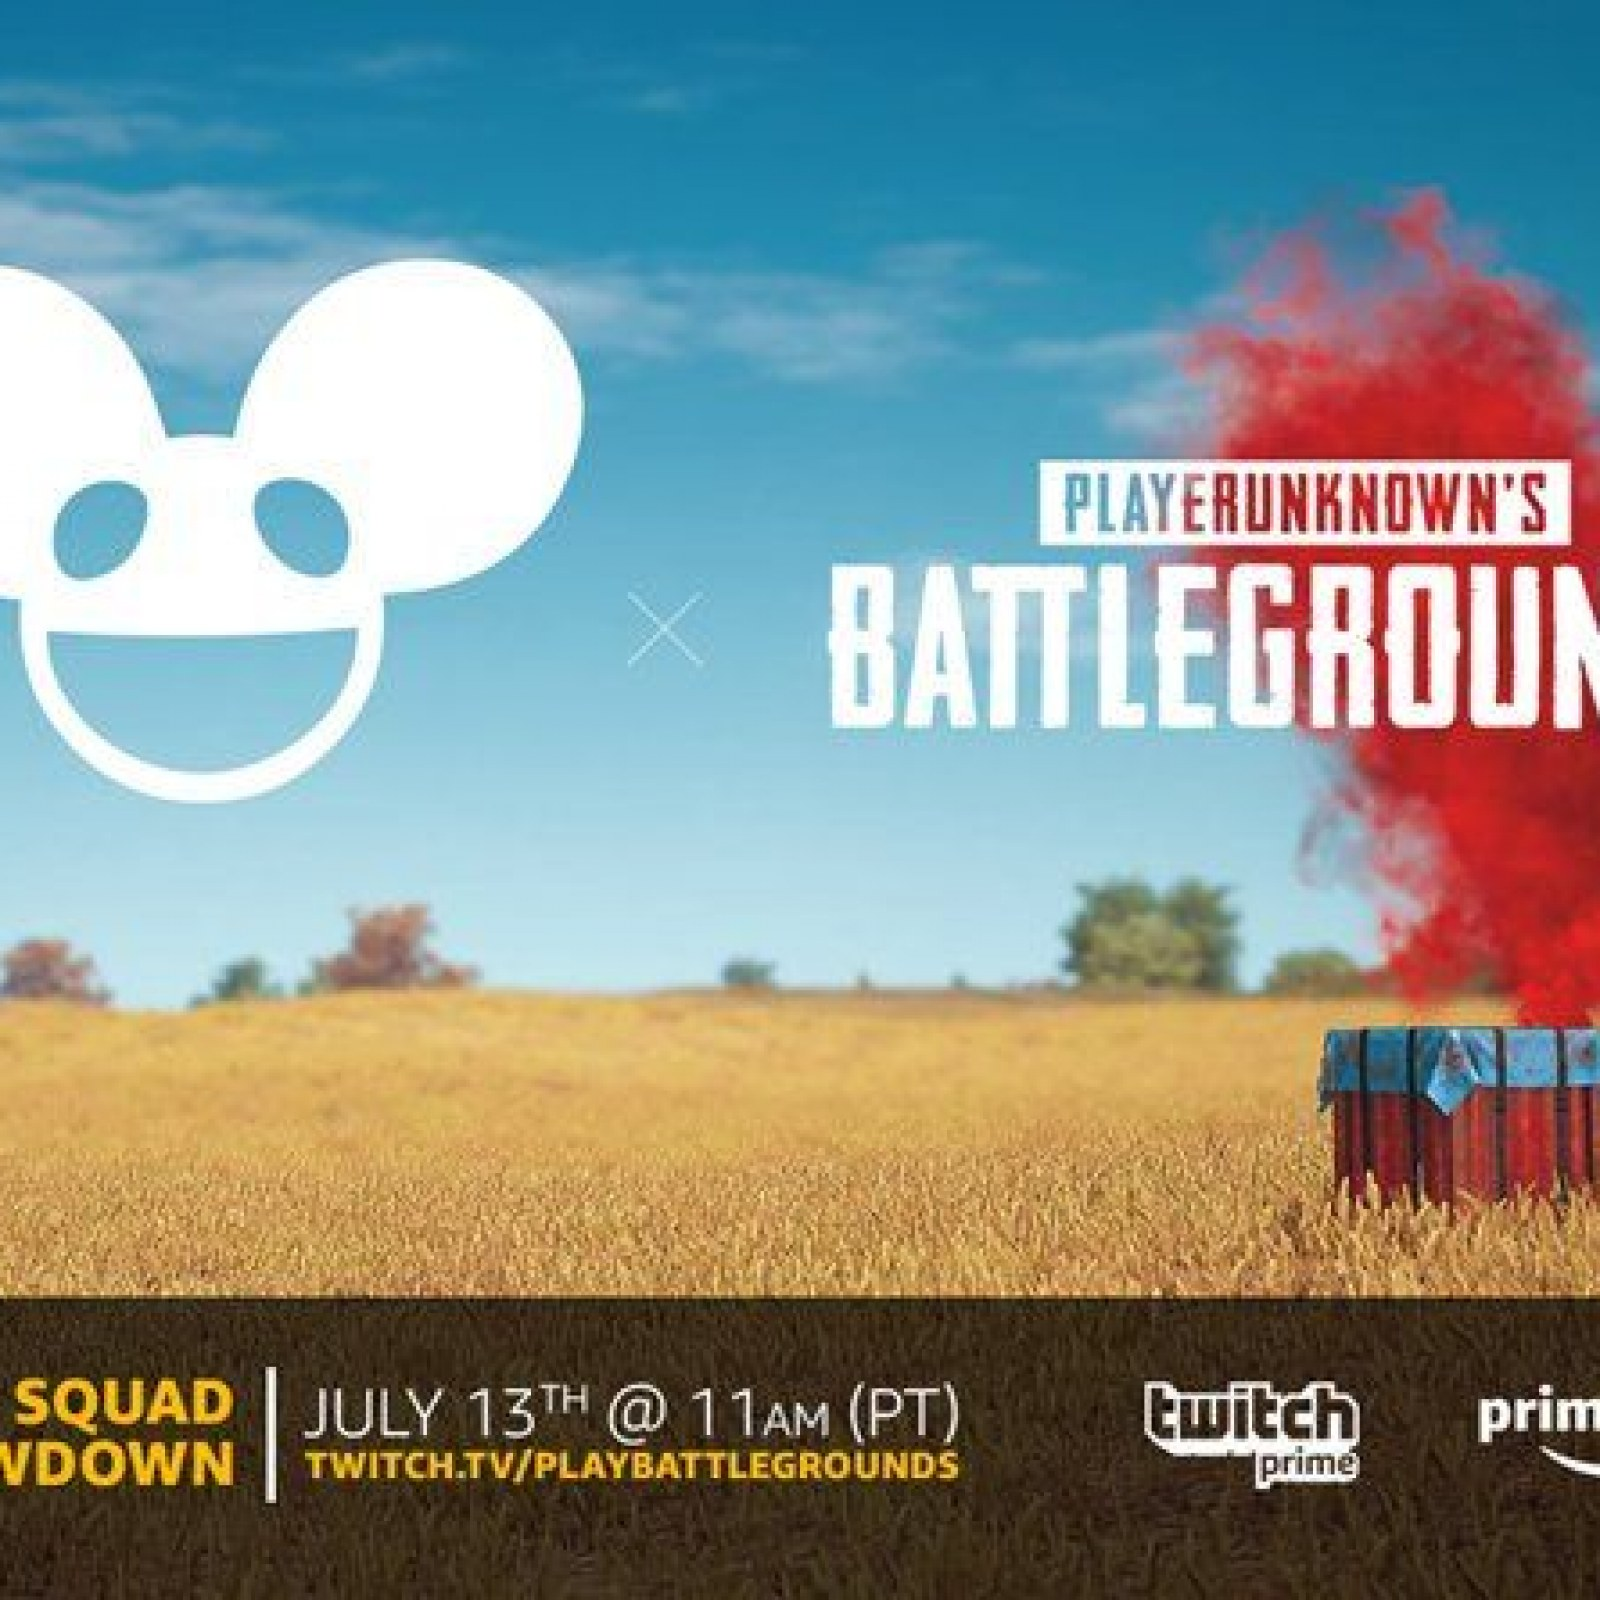 How To Link Your Twitch Account Pubg Support - Ogmetro com